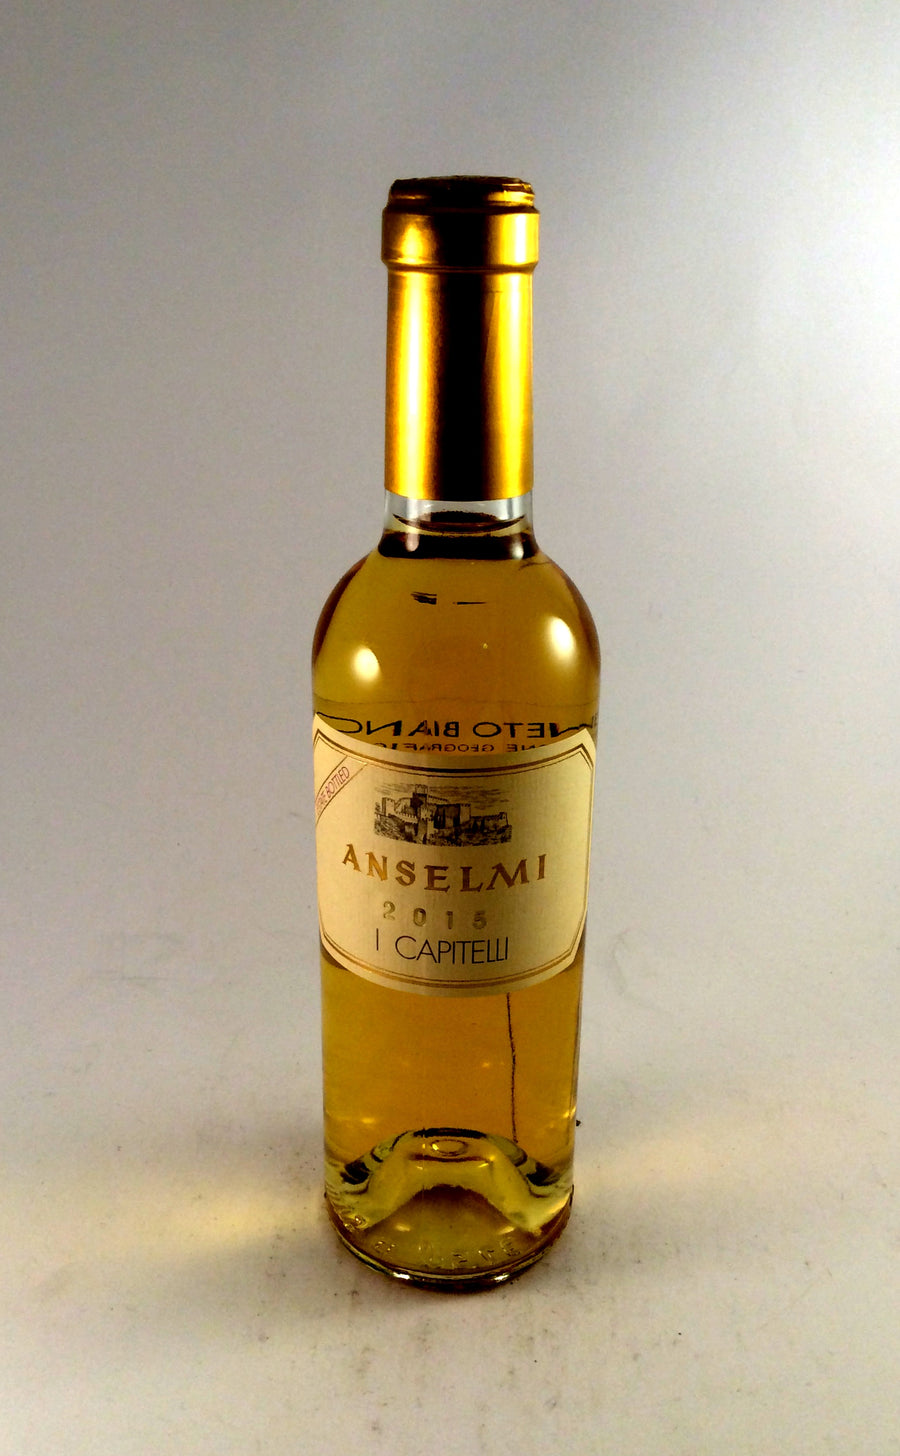 Anselmi I Capitelli Recioto di Soave 375ml - Wineseeker